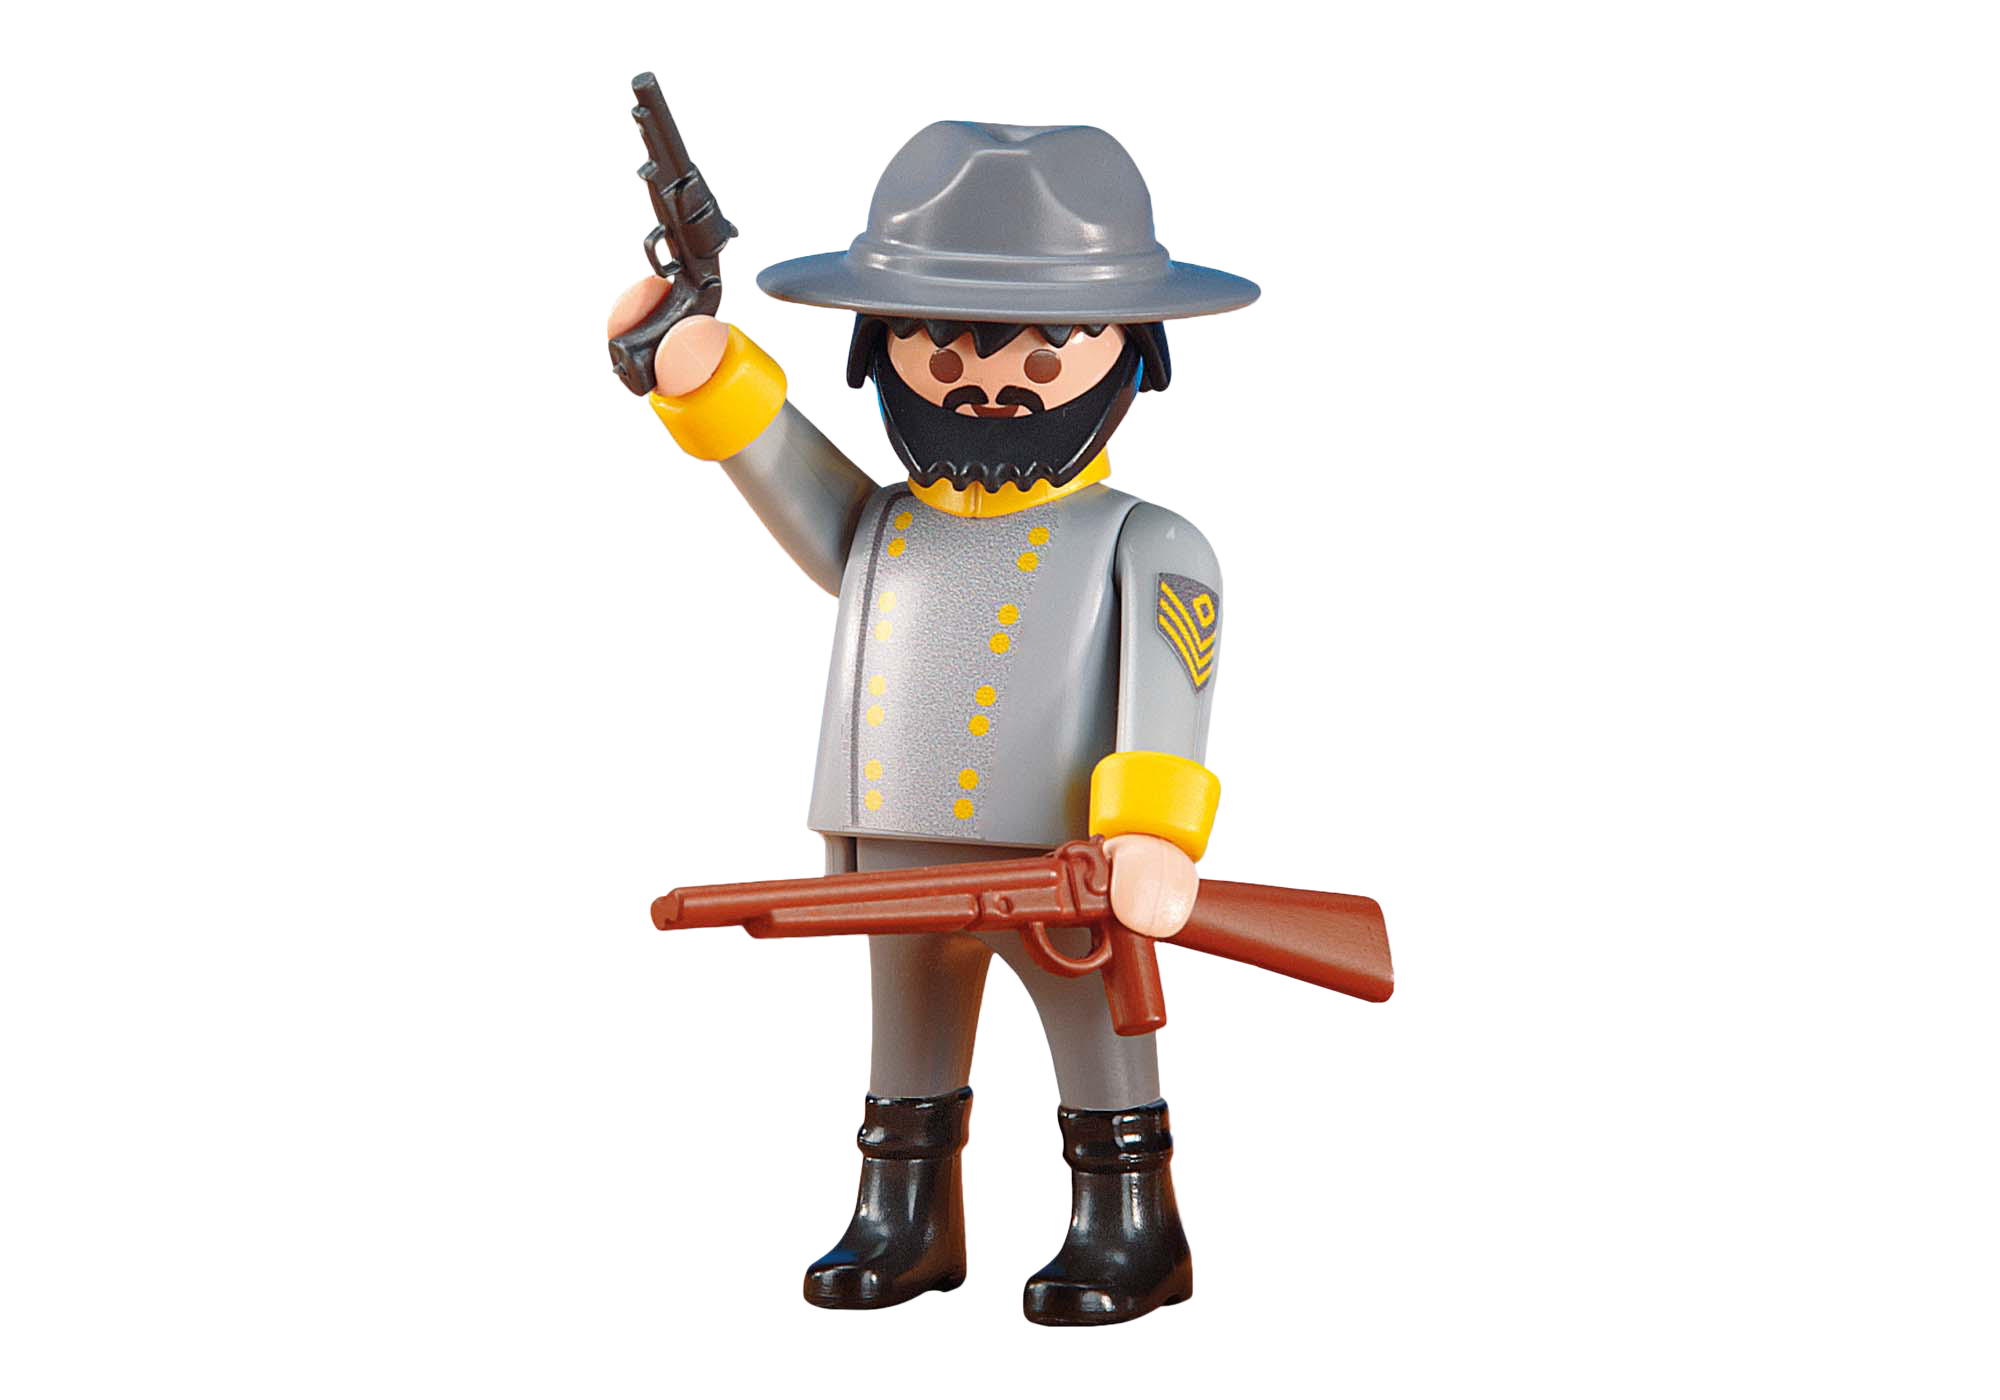 http://media.playmobil.com/i/playmobil/6275_product_detail